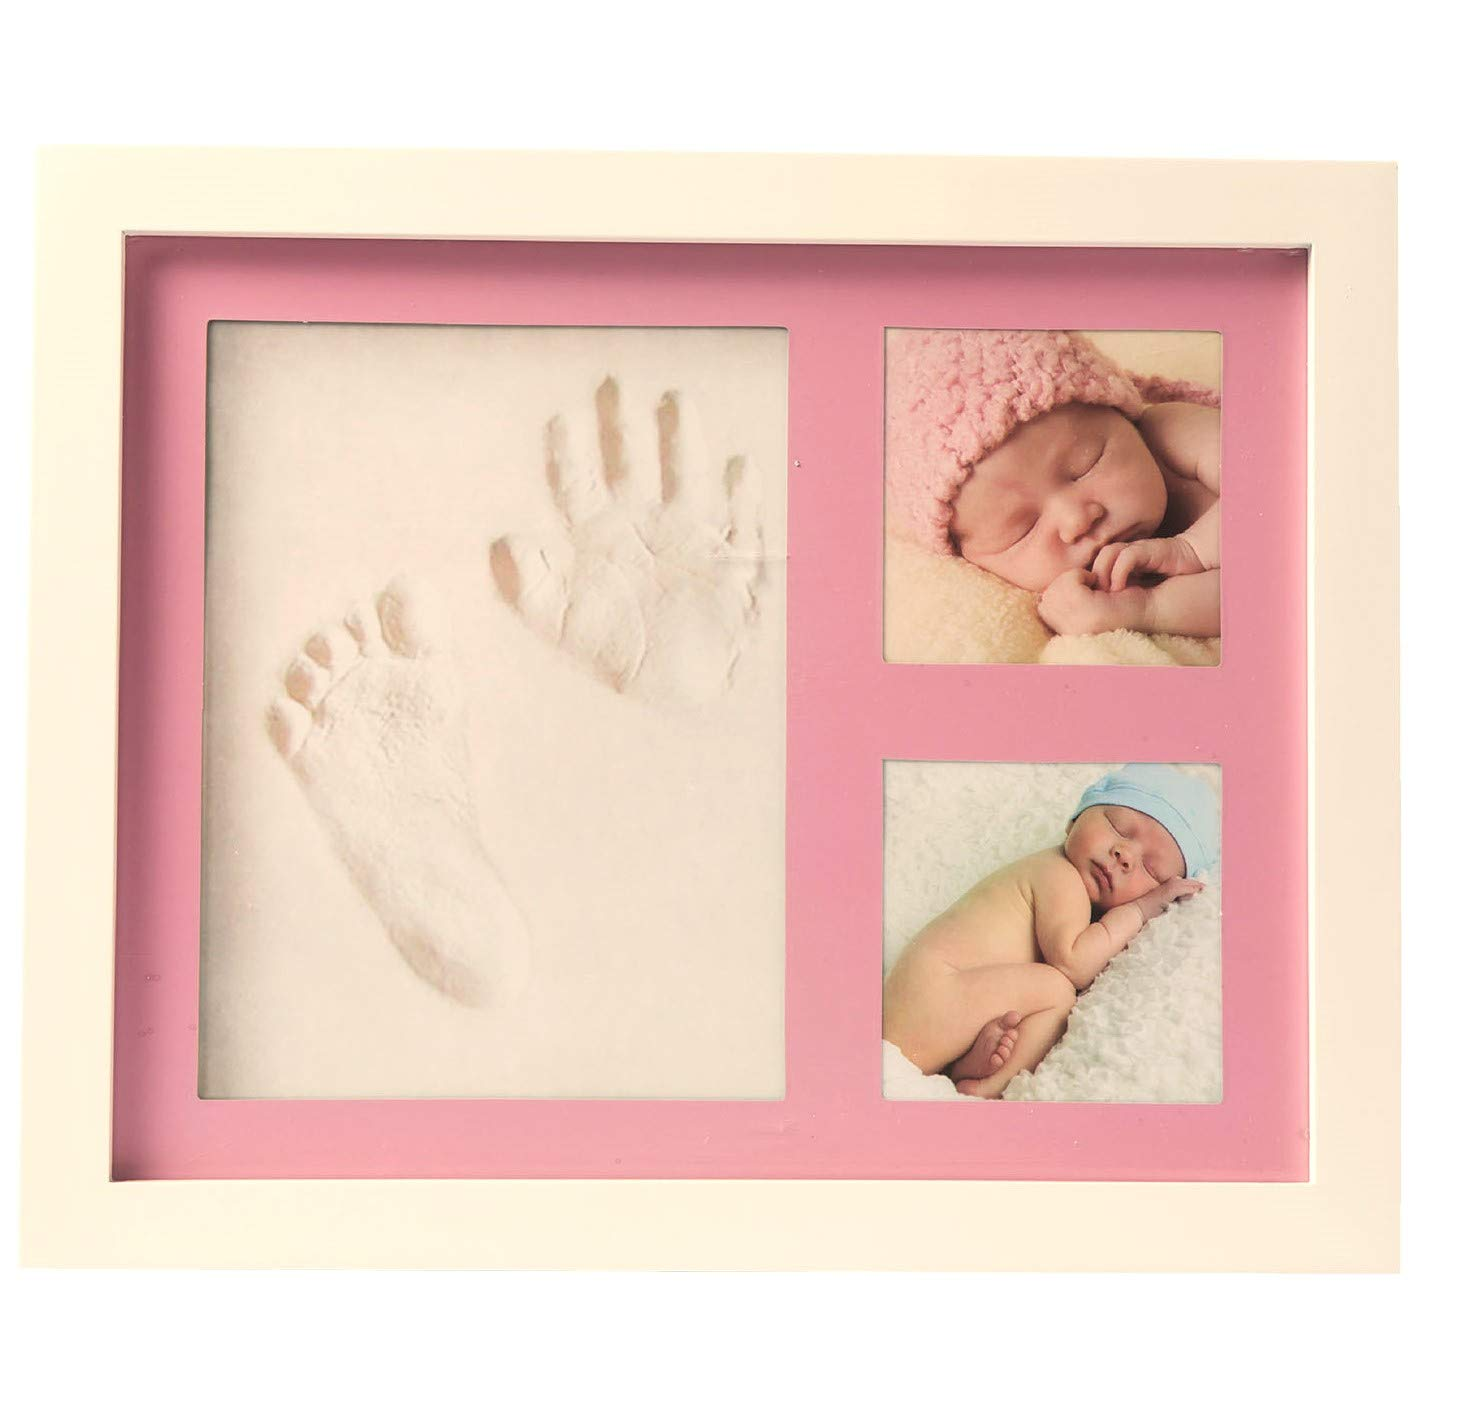 Premium Baby Handprint, Footprint & Picture Frame Kit - Registry for Baby Shower - Baby Gifts for Newborn Babies - Clay & 2 Photo Frames in White & Pink, Tiffany Blue & Gray - Baby Girl & Boy Gifts